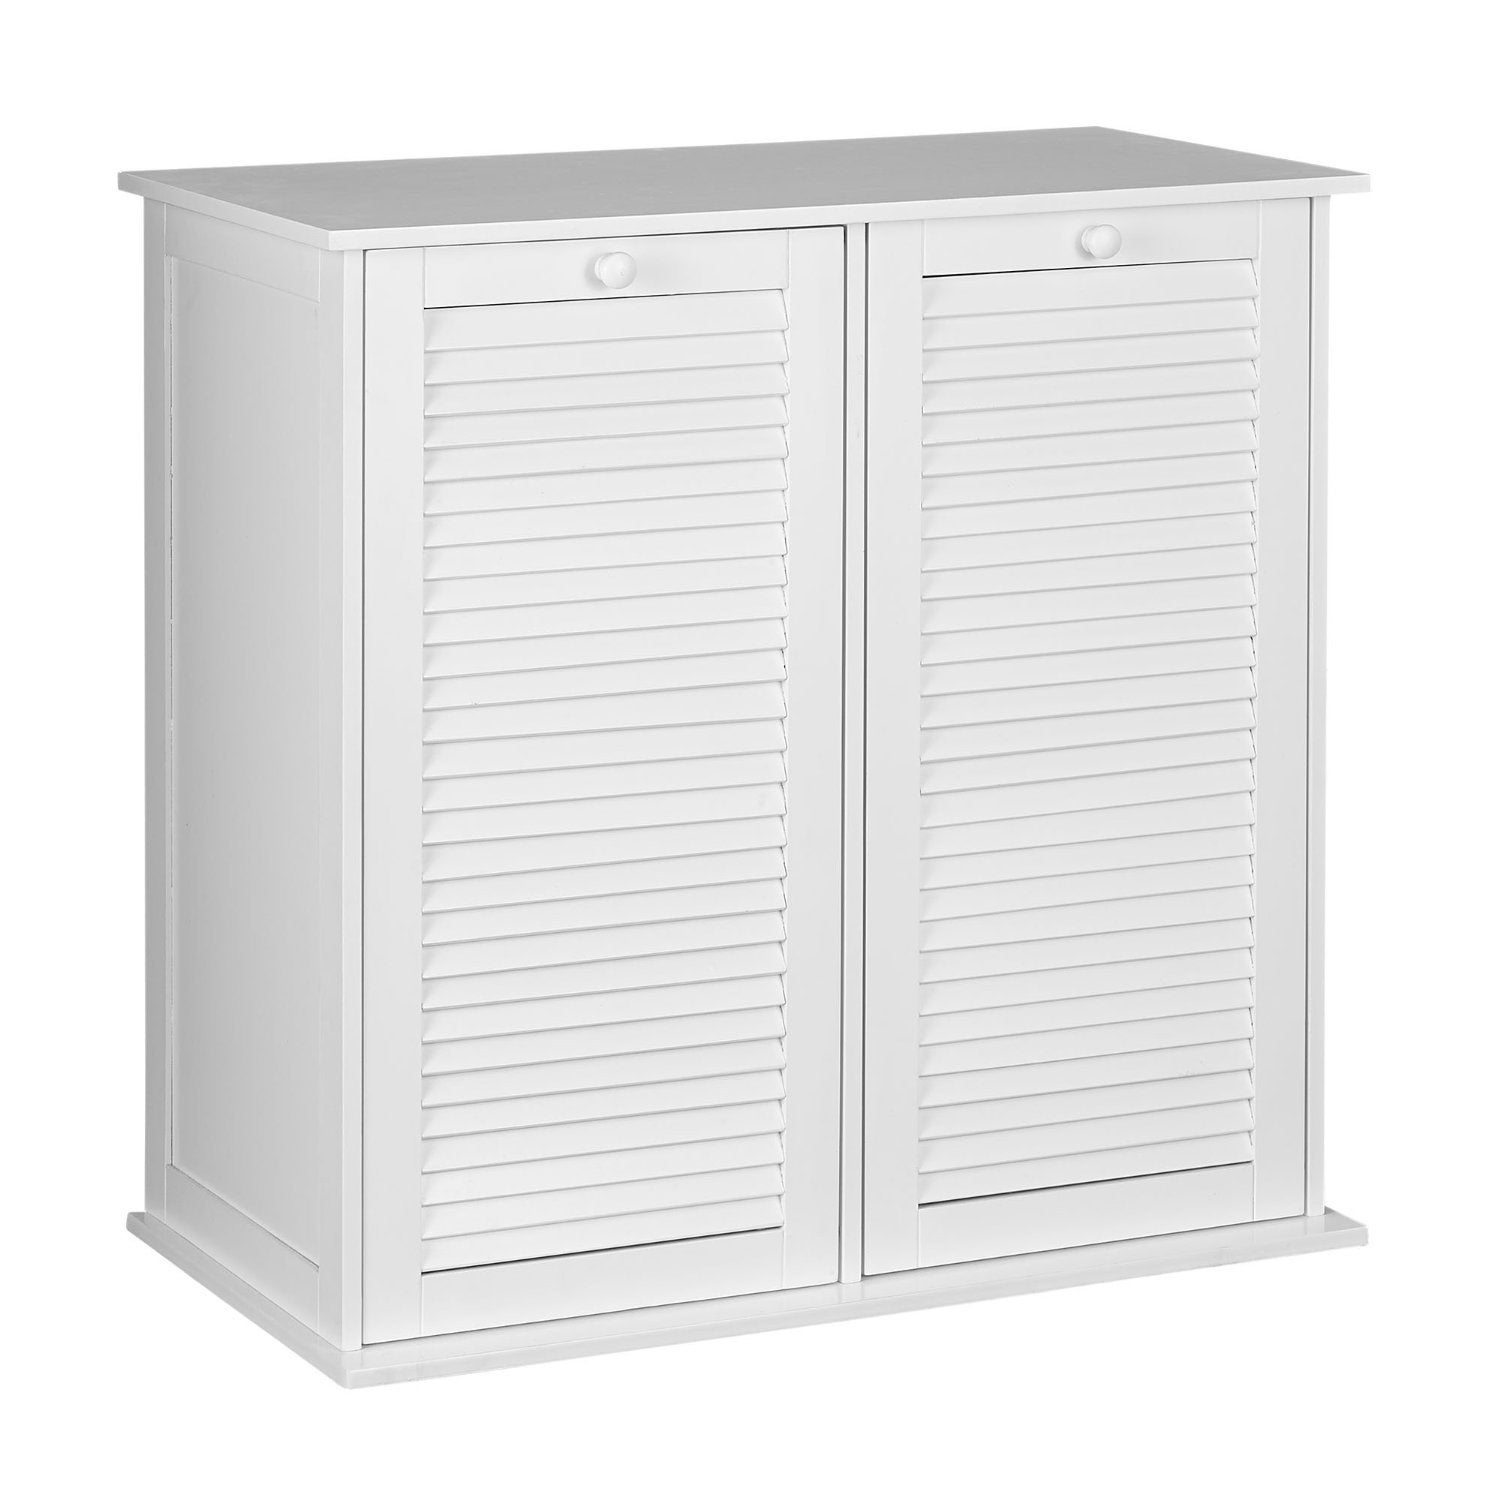 Household Essentials White Shutter Front Tilt Out Cabinet Laundry Sorter